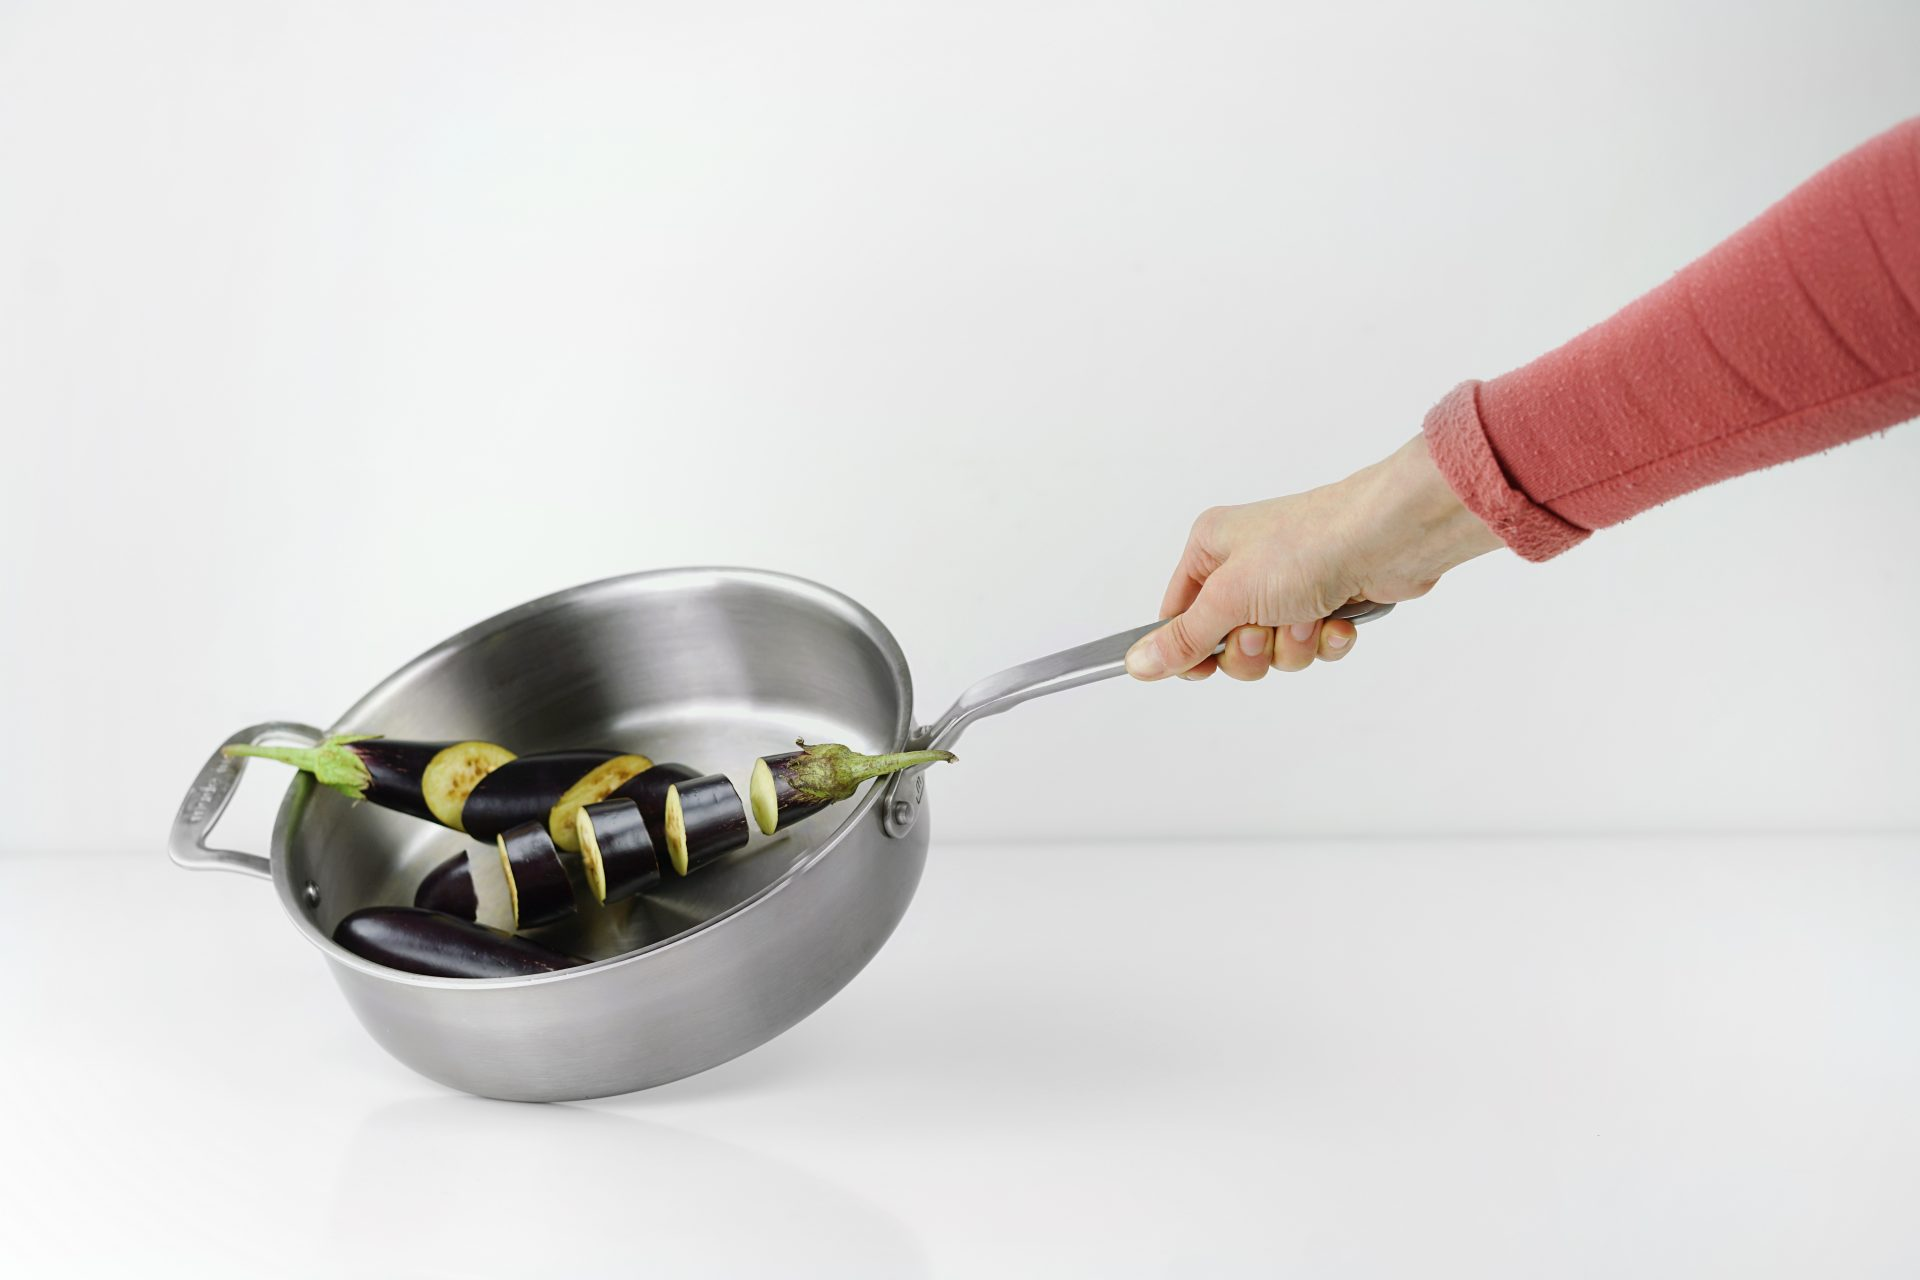 eggplant in a pan